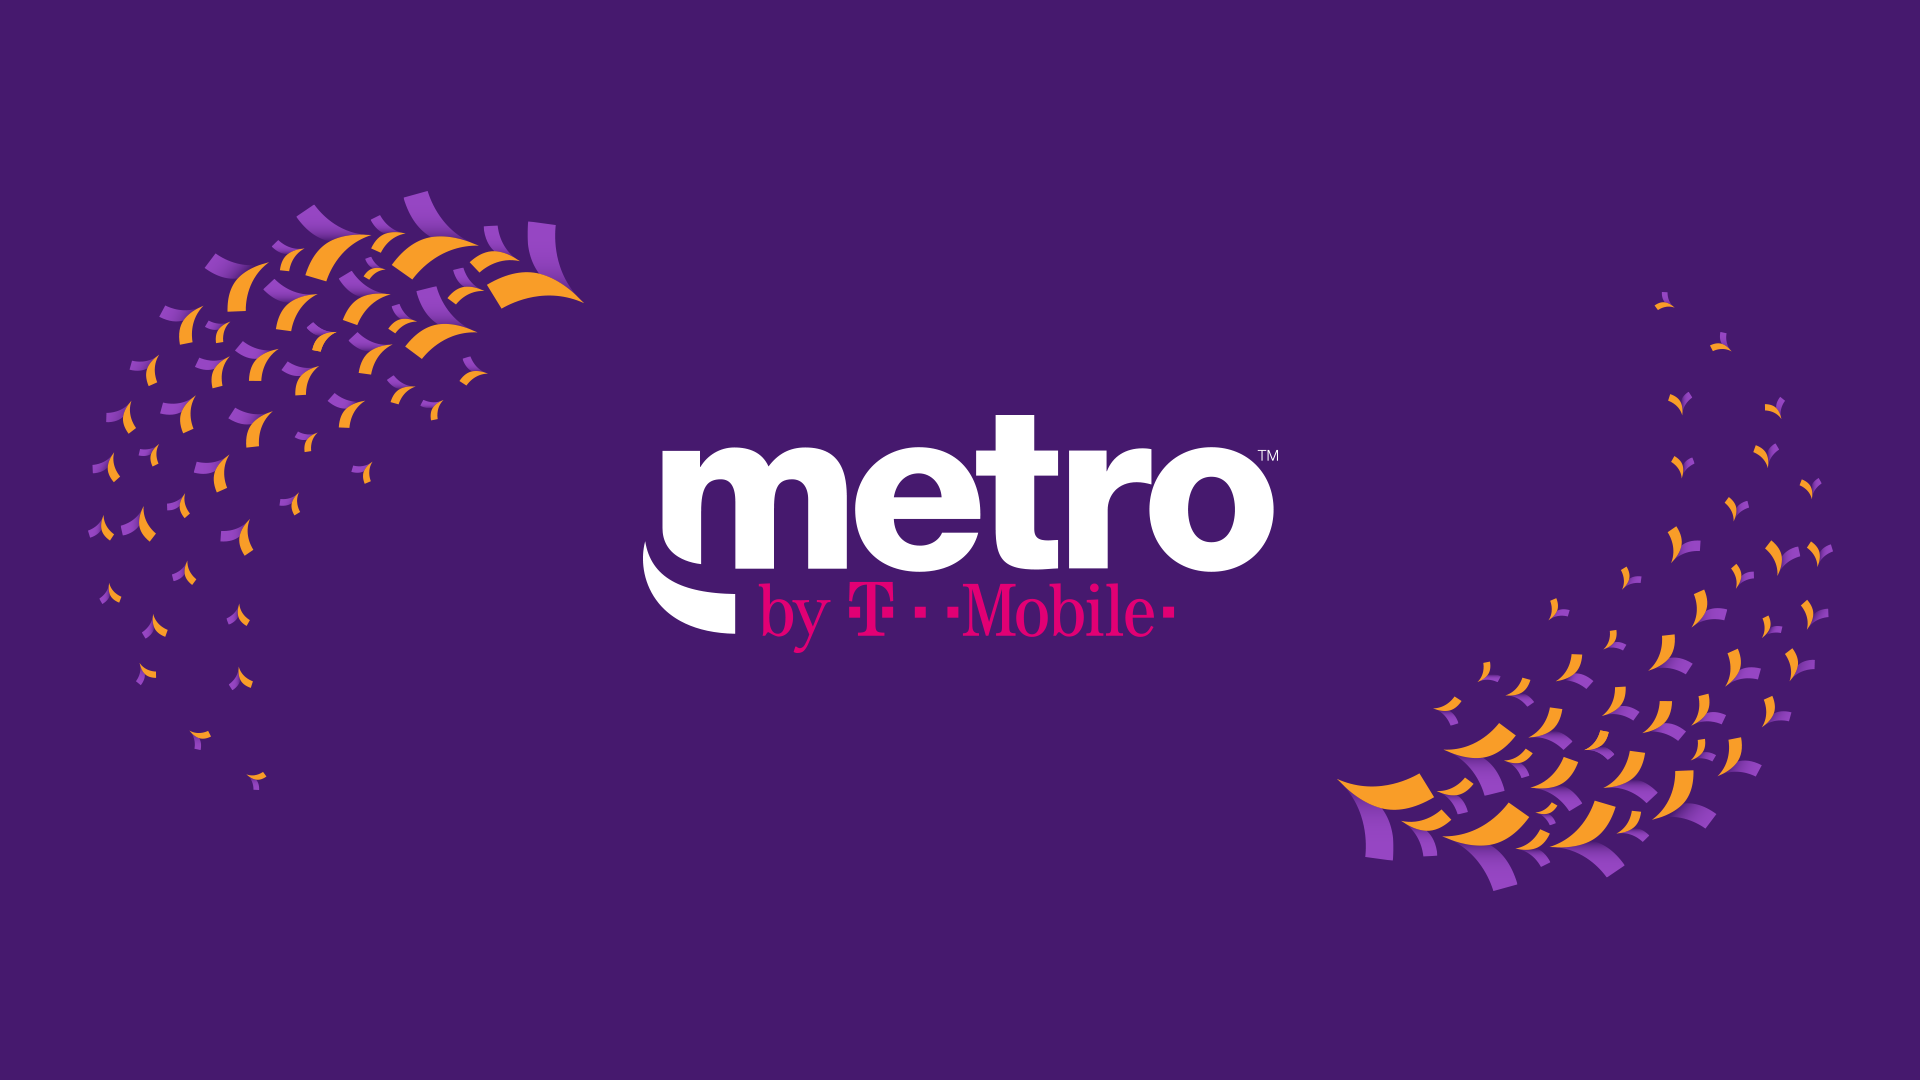 MetroPCS Greensboro